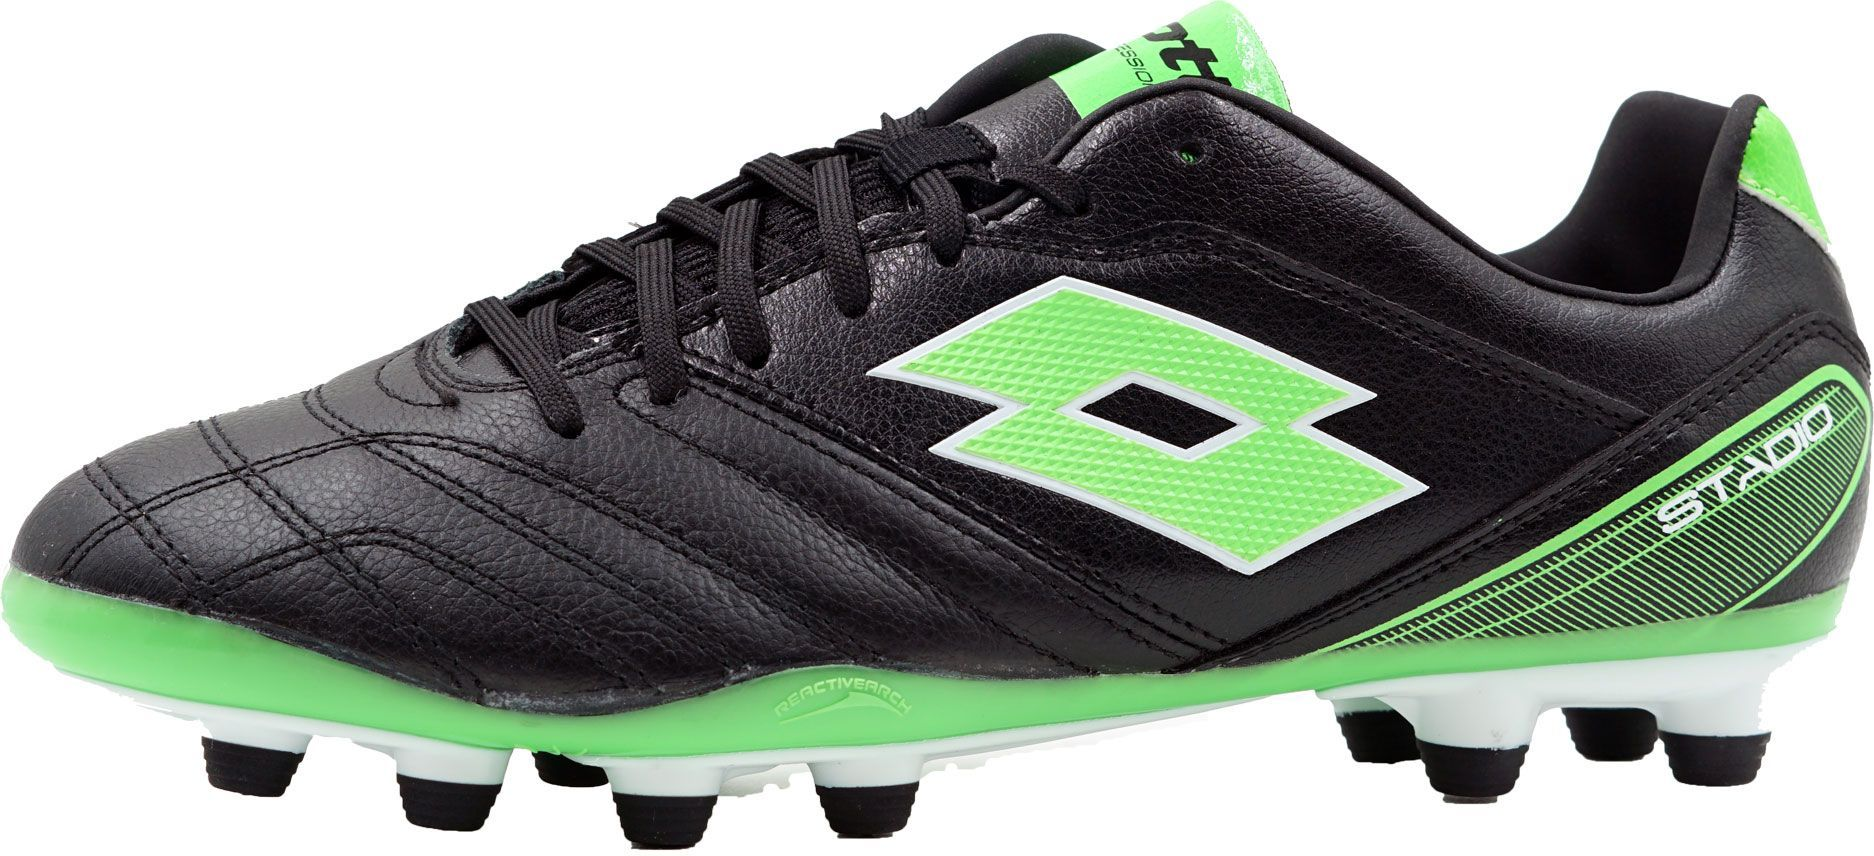 1d0eba61a43d Lotto Men's Stadio 300 FG Soccer Cleats | Products | Soccer cleats ...